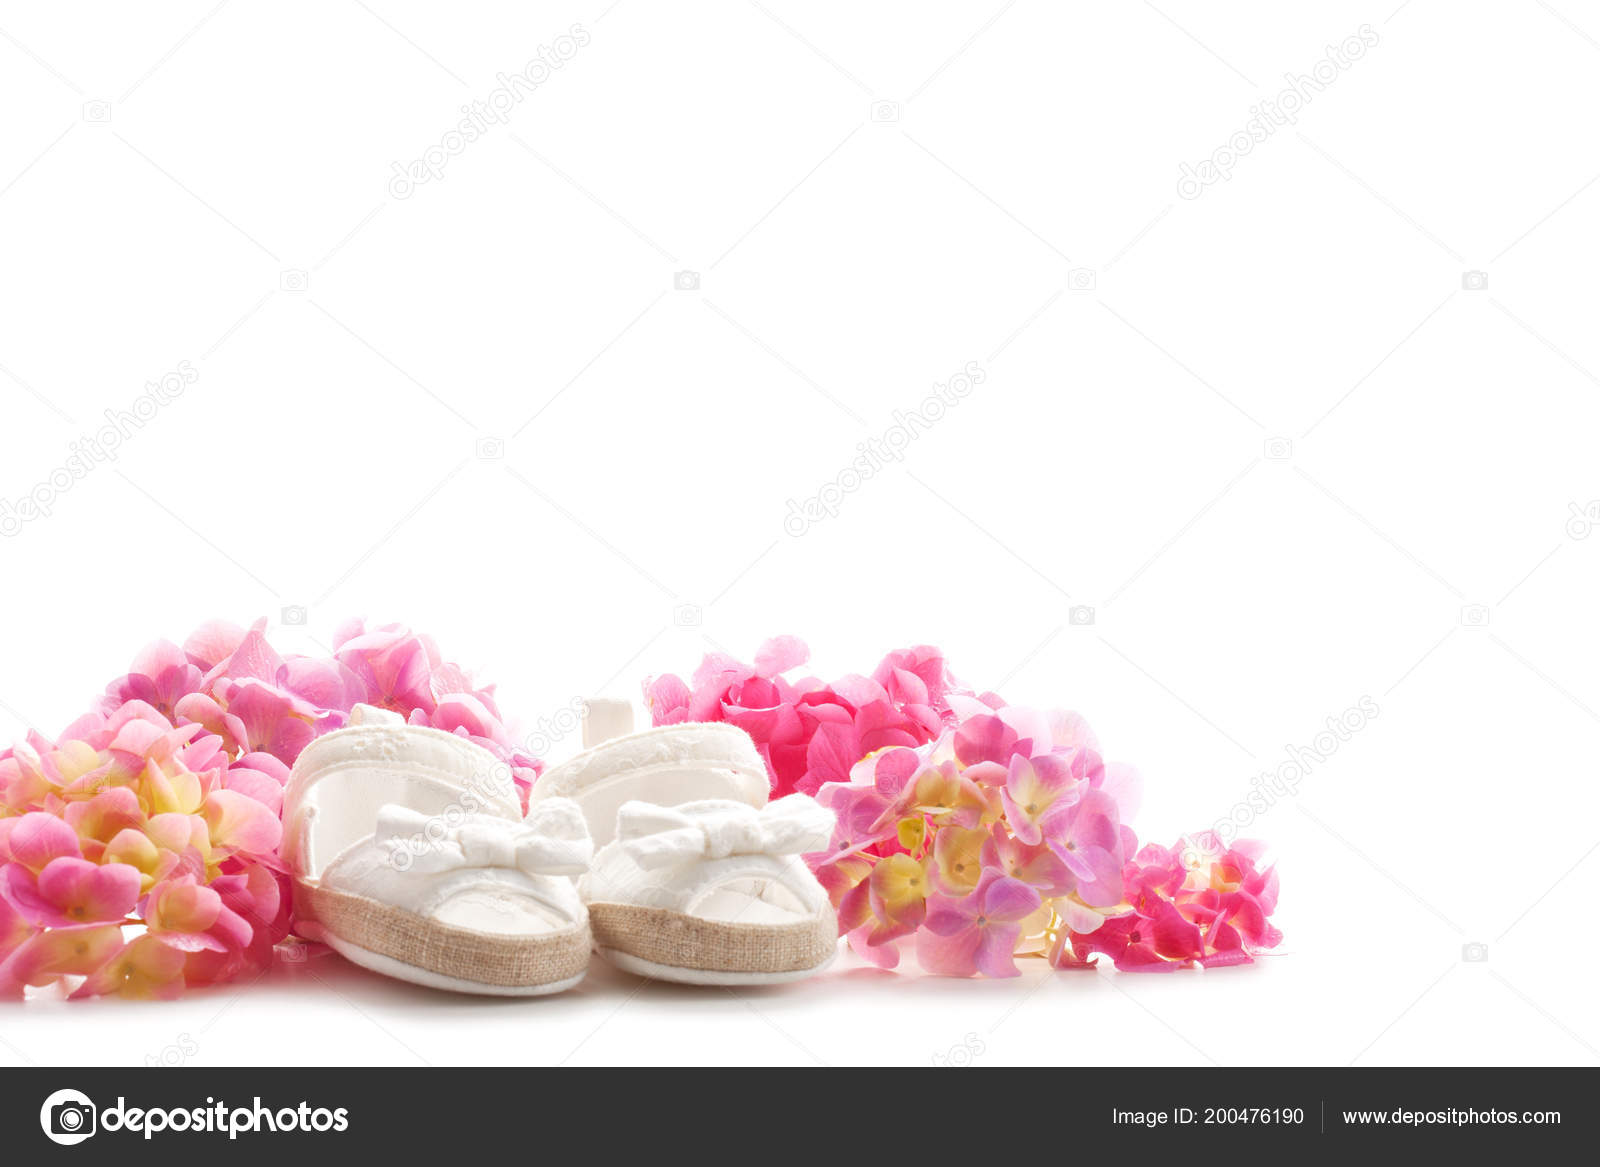 Cute newborn baby girl shoes hortensia flowers white background baby stock photo